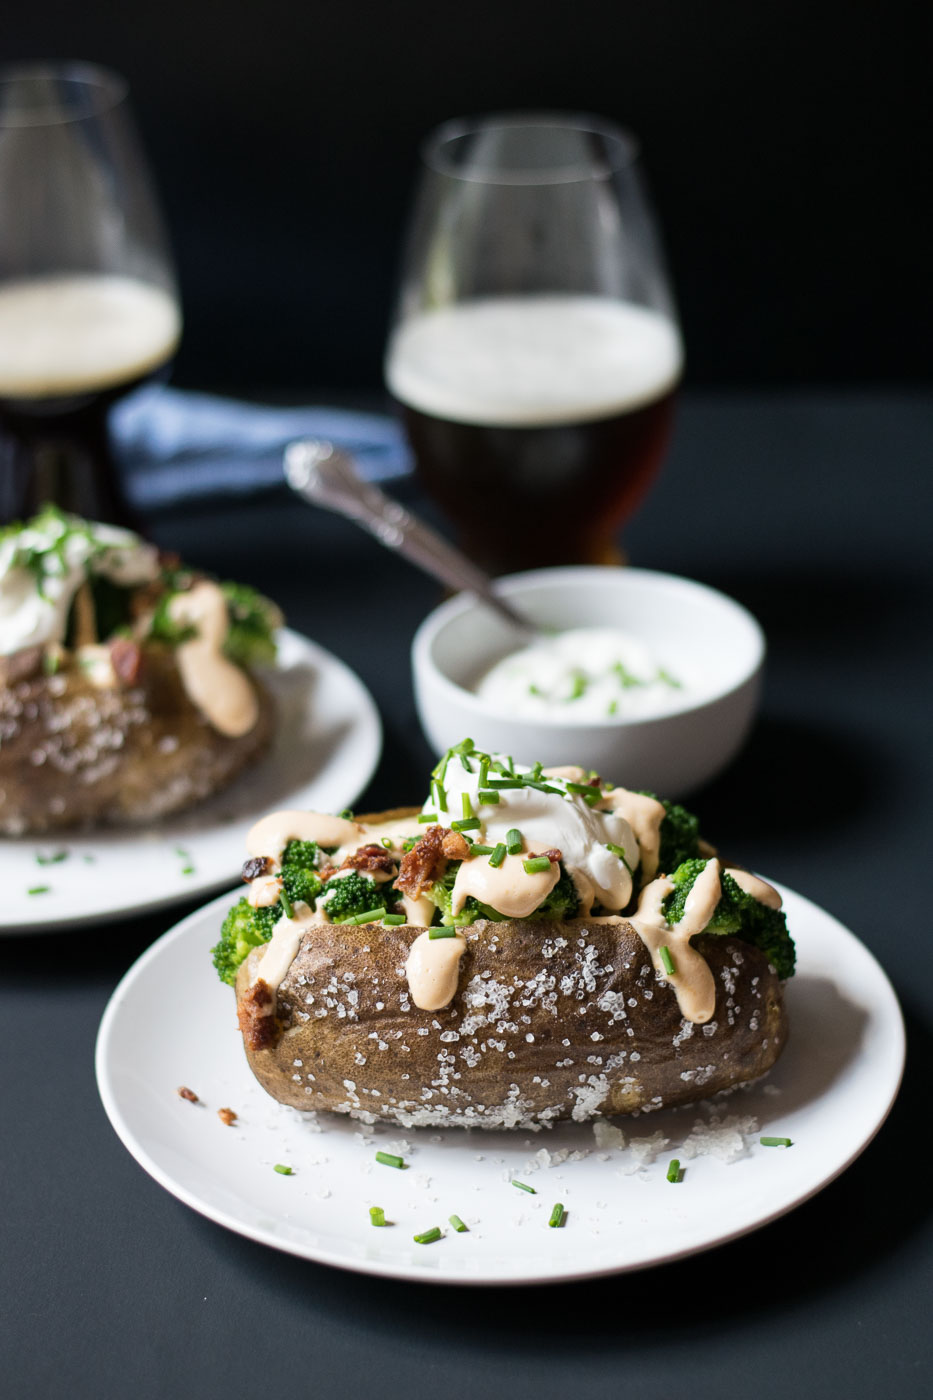 Steakhouse Loaded Baked Potatoes with Beer Cheese is just like a classic fancy baked potato you would find in an expensive steakhouse. This potato is made extra special and delicious with a heaping amount of beer cheese on top!